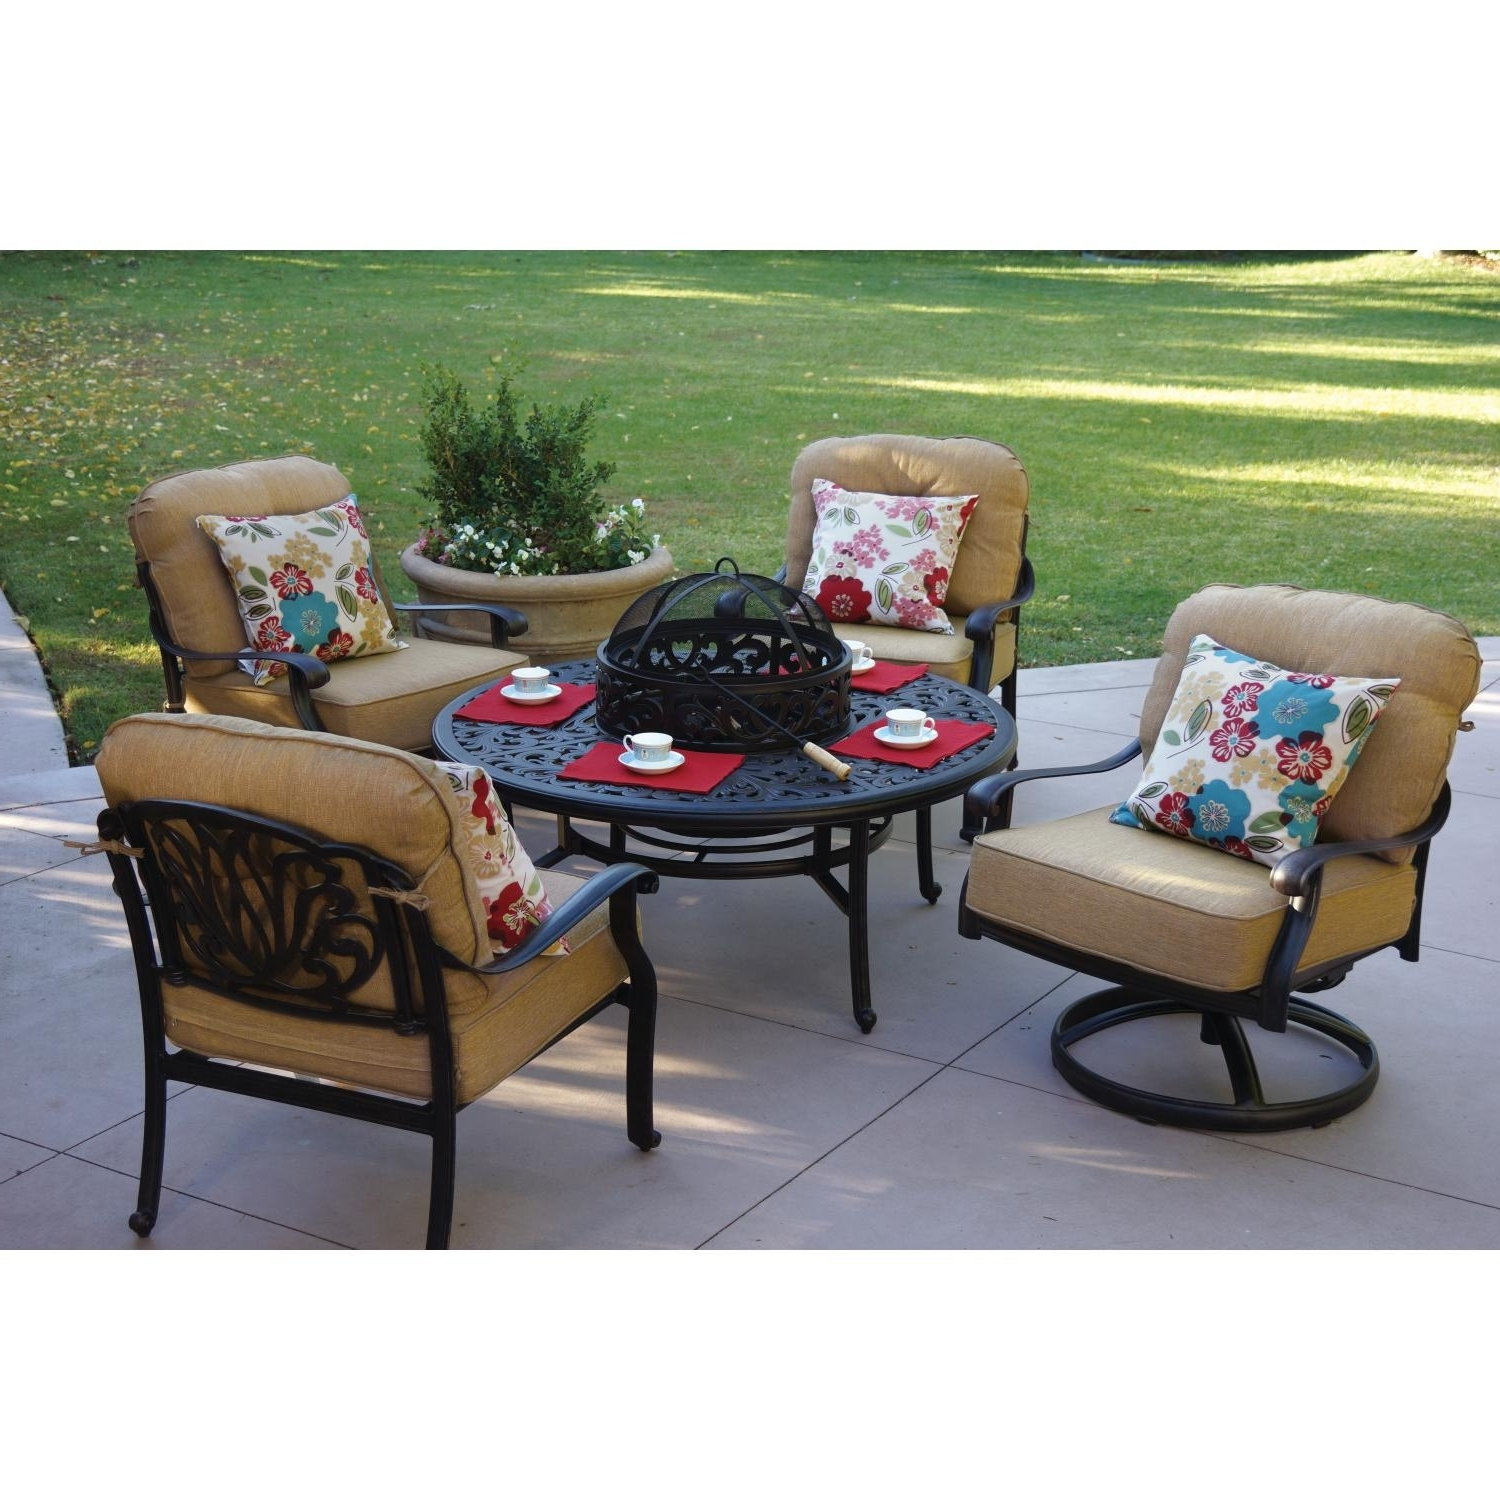 Patio Conversation Sets With Fire Pit Table Throughout Well Known Darlee Elisabeth 5 Piece Patio Fire Pit Conversation Seating Set (View 13 of 20)